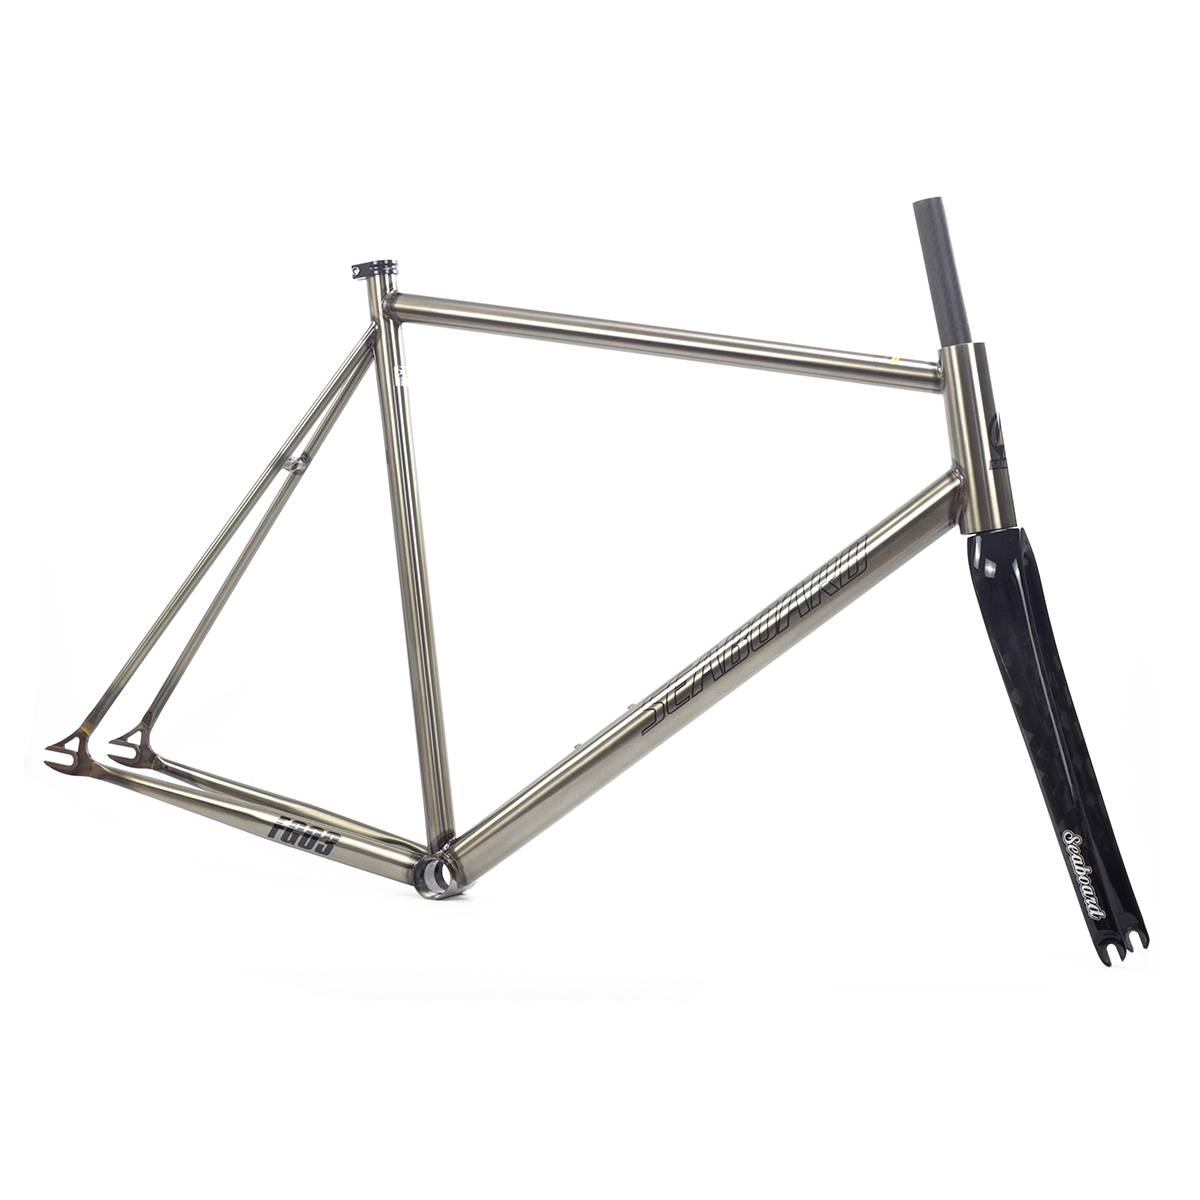 Seaboard Tsunami Cromolly Fixed Gear Frameset Frame Carbon Fork Custom Chrome Cr-mo Steel Fixie Track Bike Frameset Super